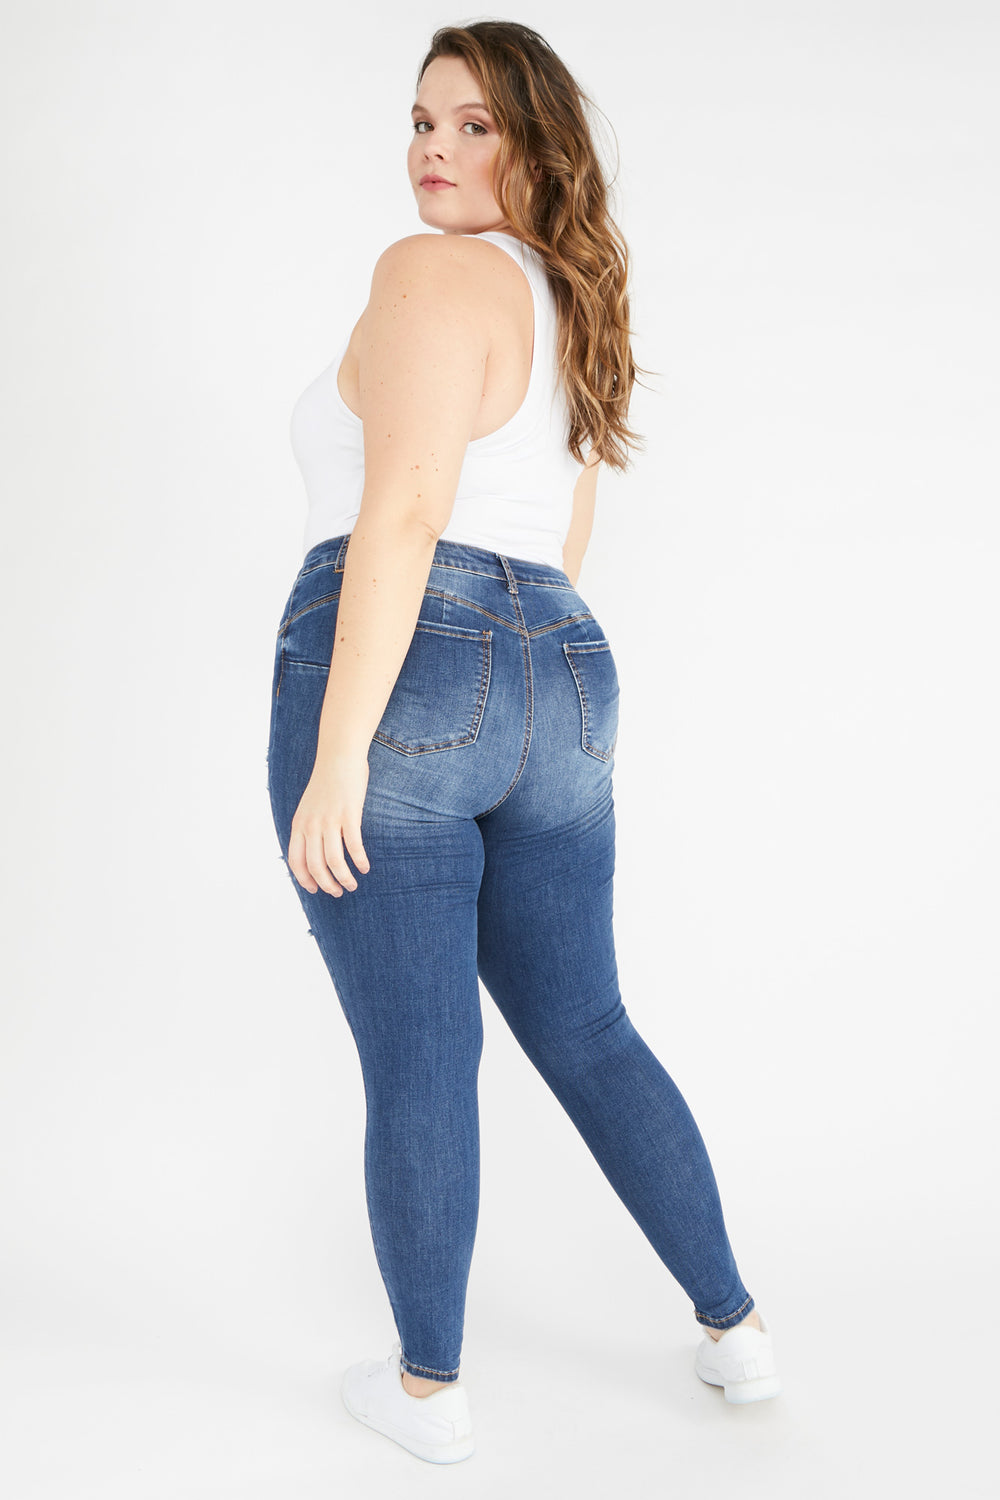 Eco-Friendly Butt, I Love You High-Rise Distressed Push-Up Skinny Jean Navy Blue